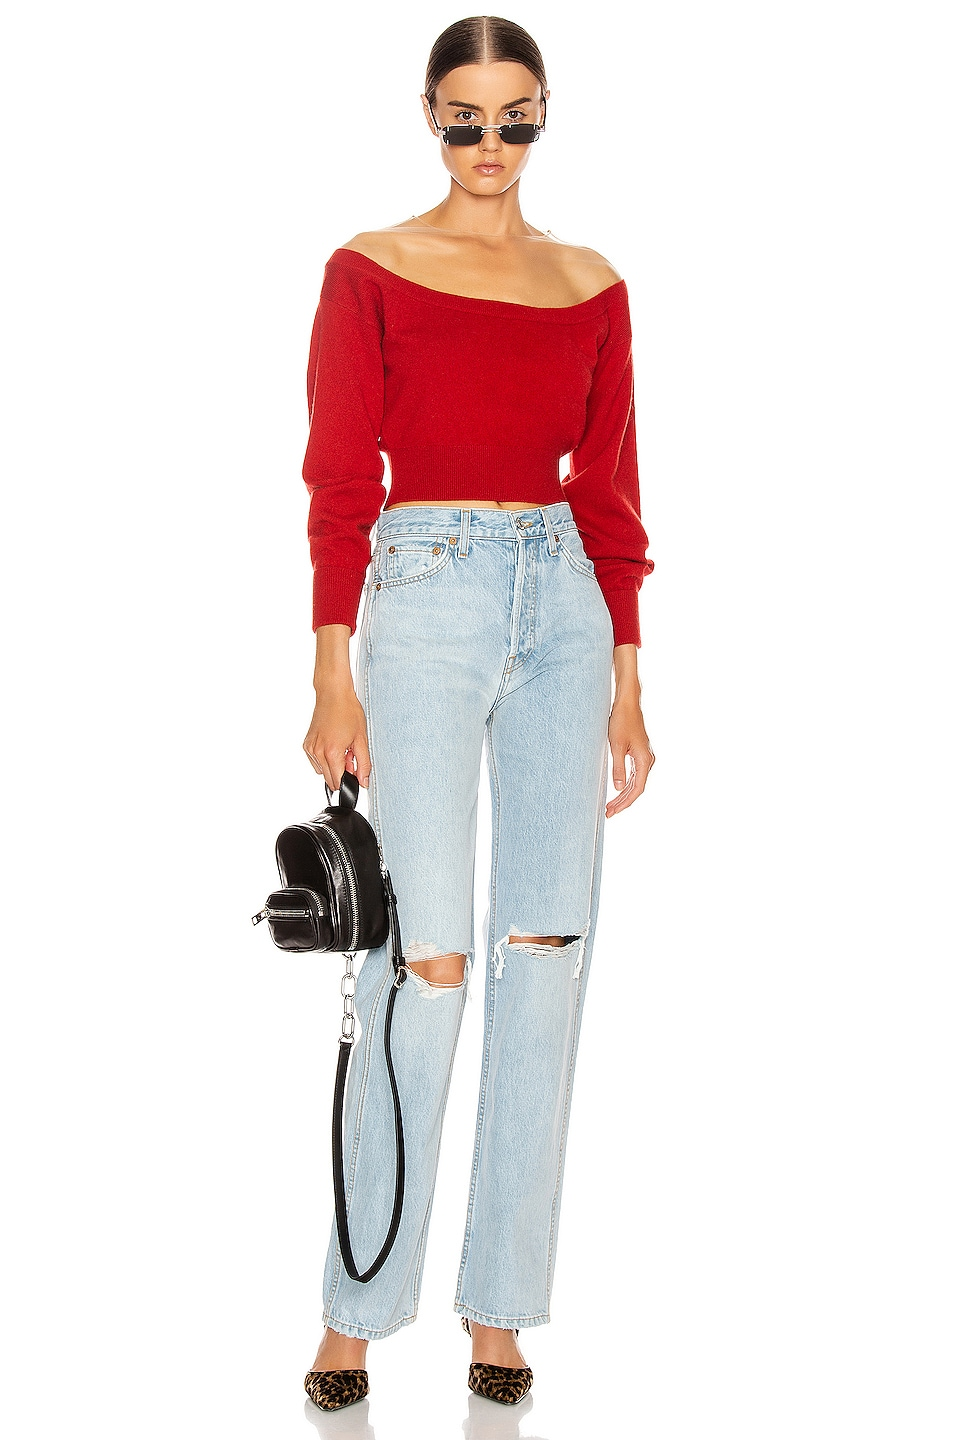 Image 4 of Alexander Wang Fitted Cropped Top in Red